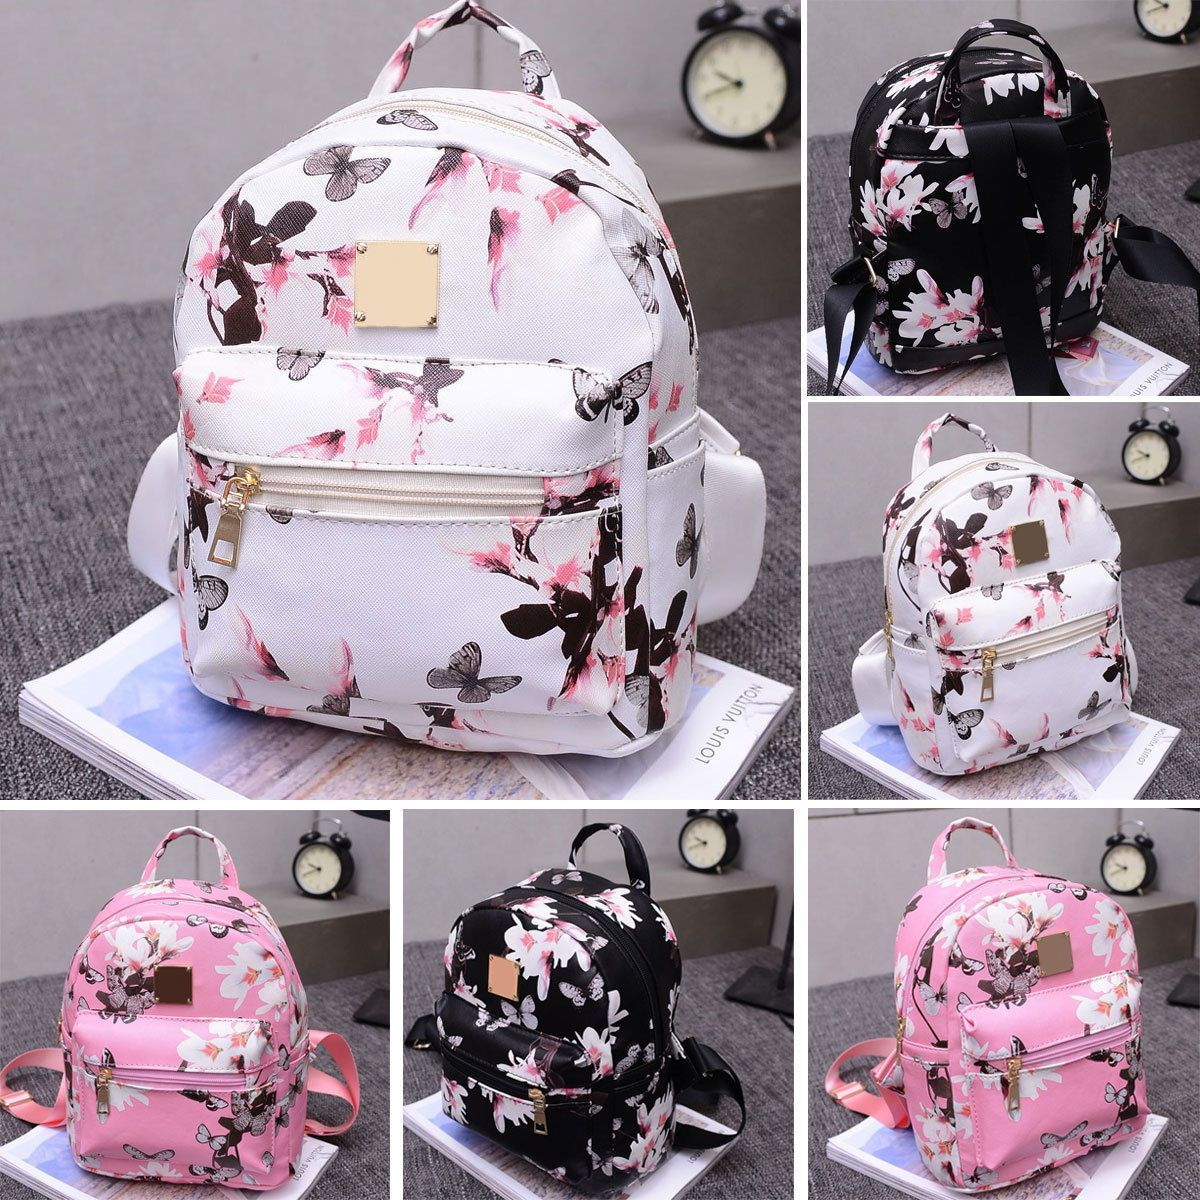 Floral Mini Backpack (Black, White, Pink) - Ladies Floral